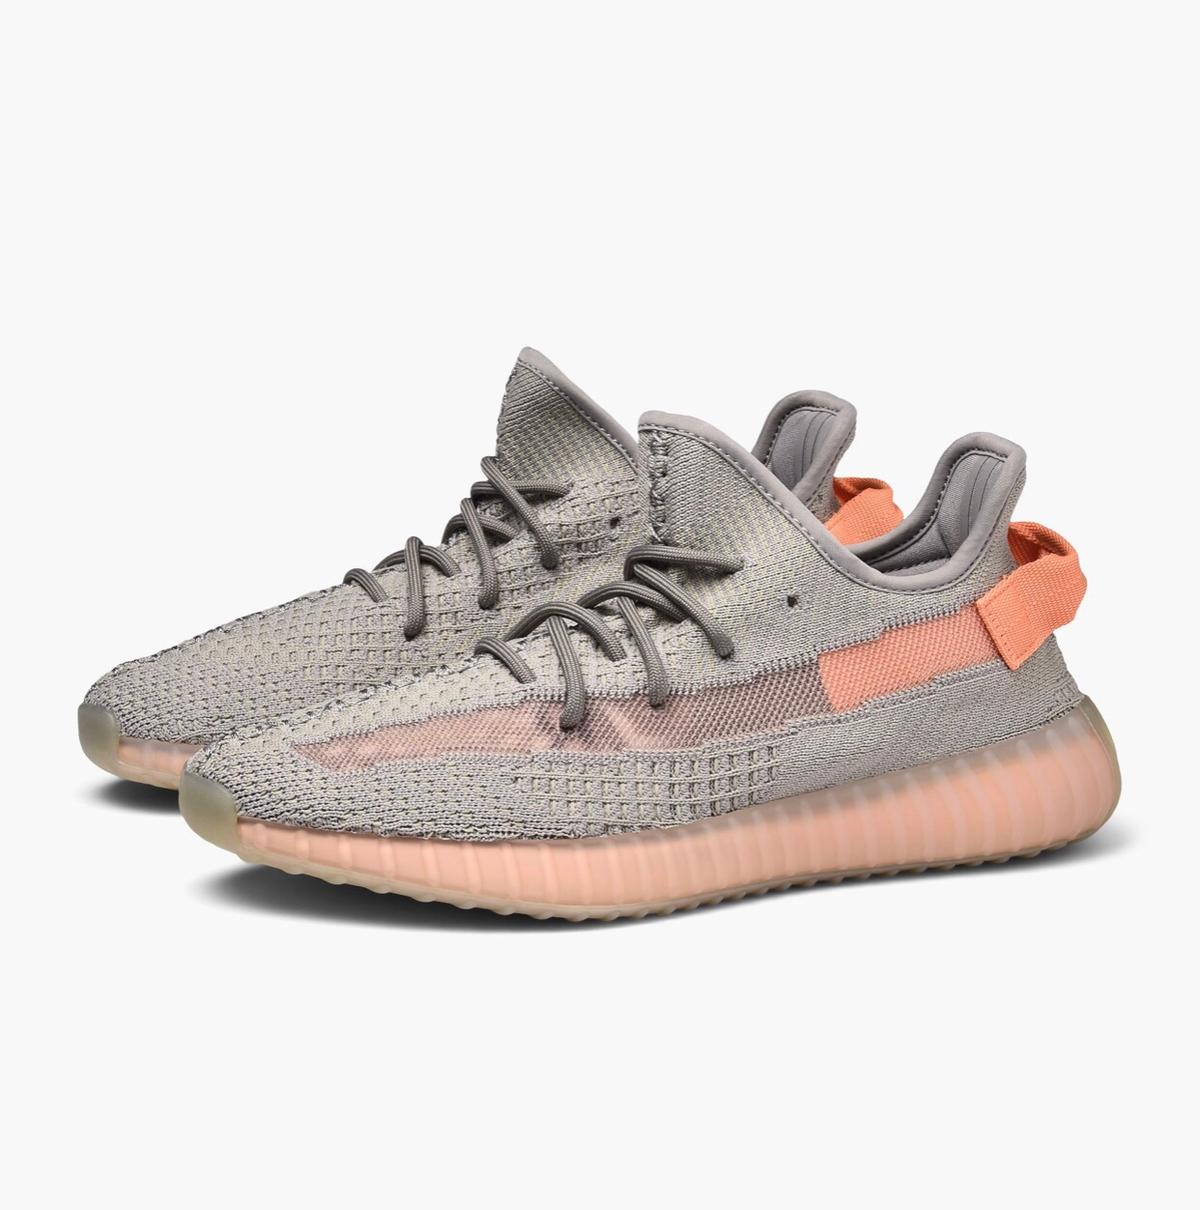 Adidas Yeezy Boost V2 True Form 44 in 66292 Riegelsberg for